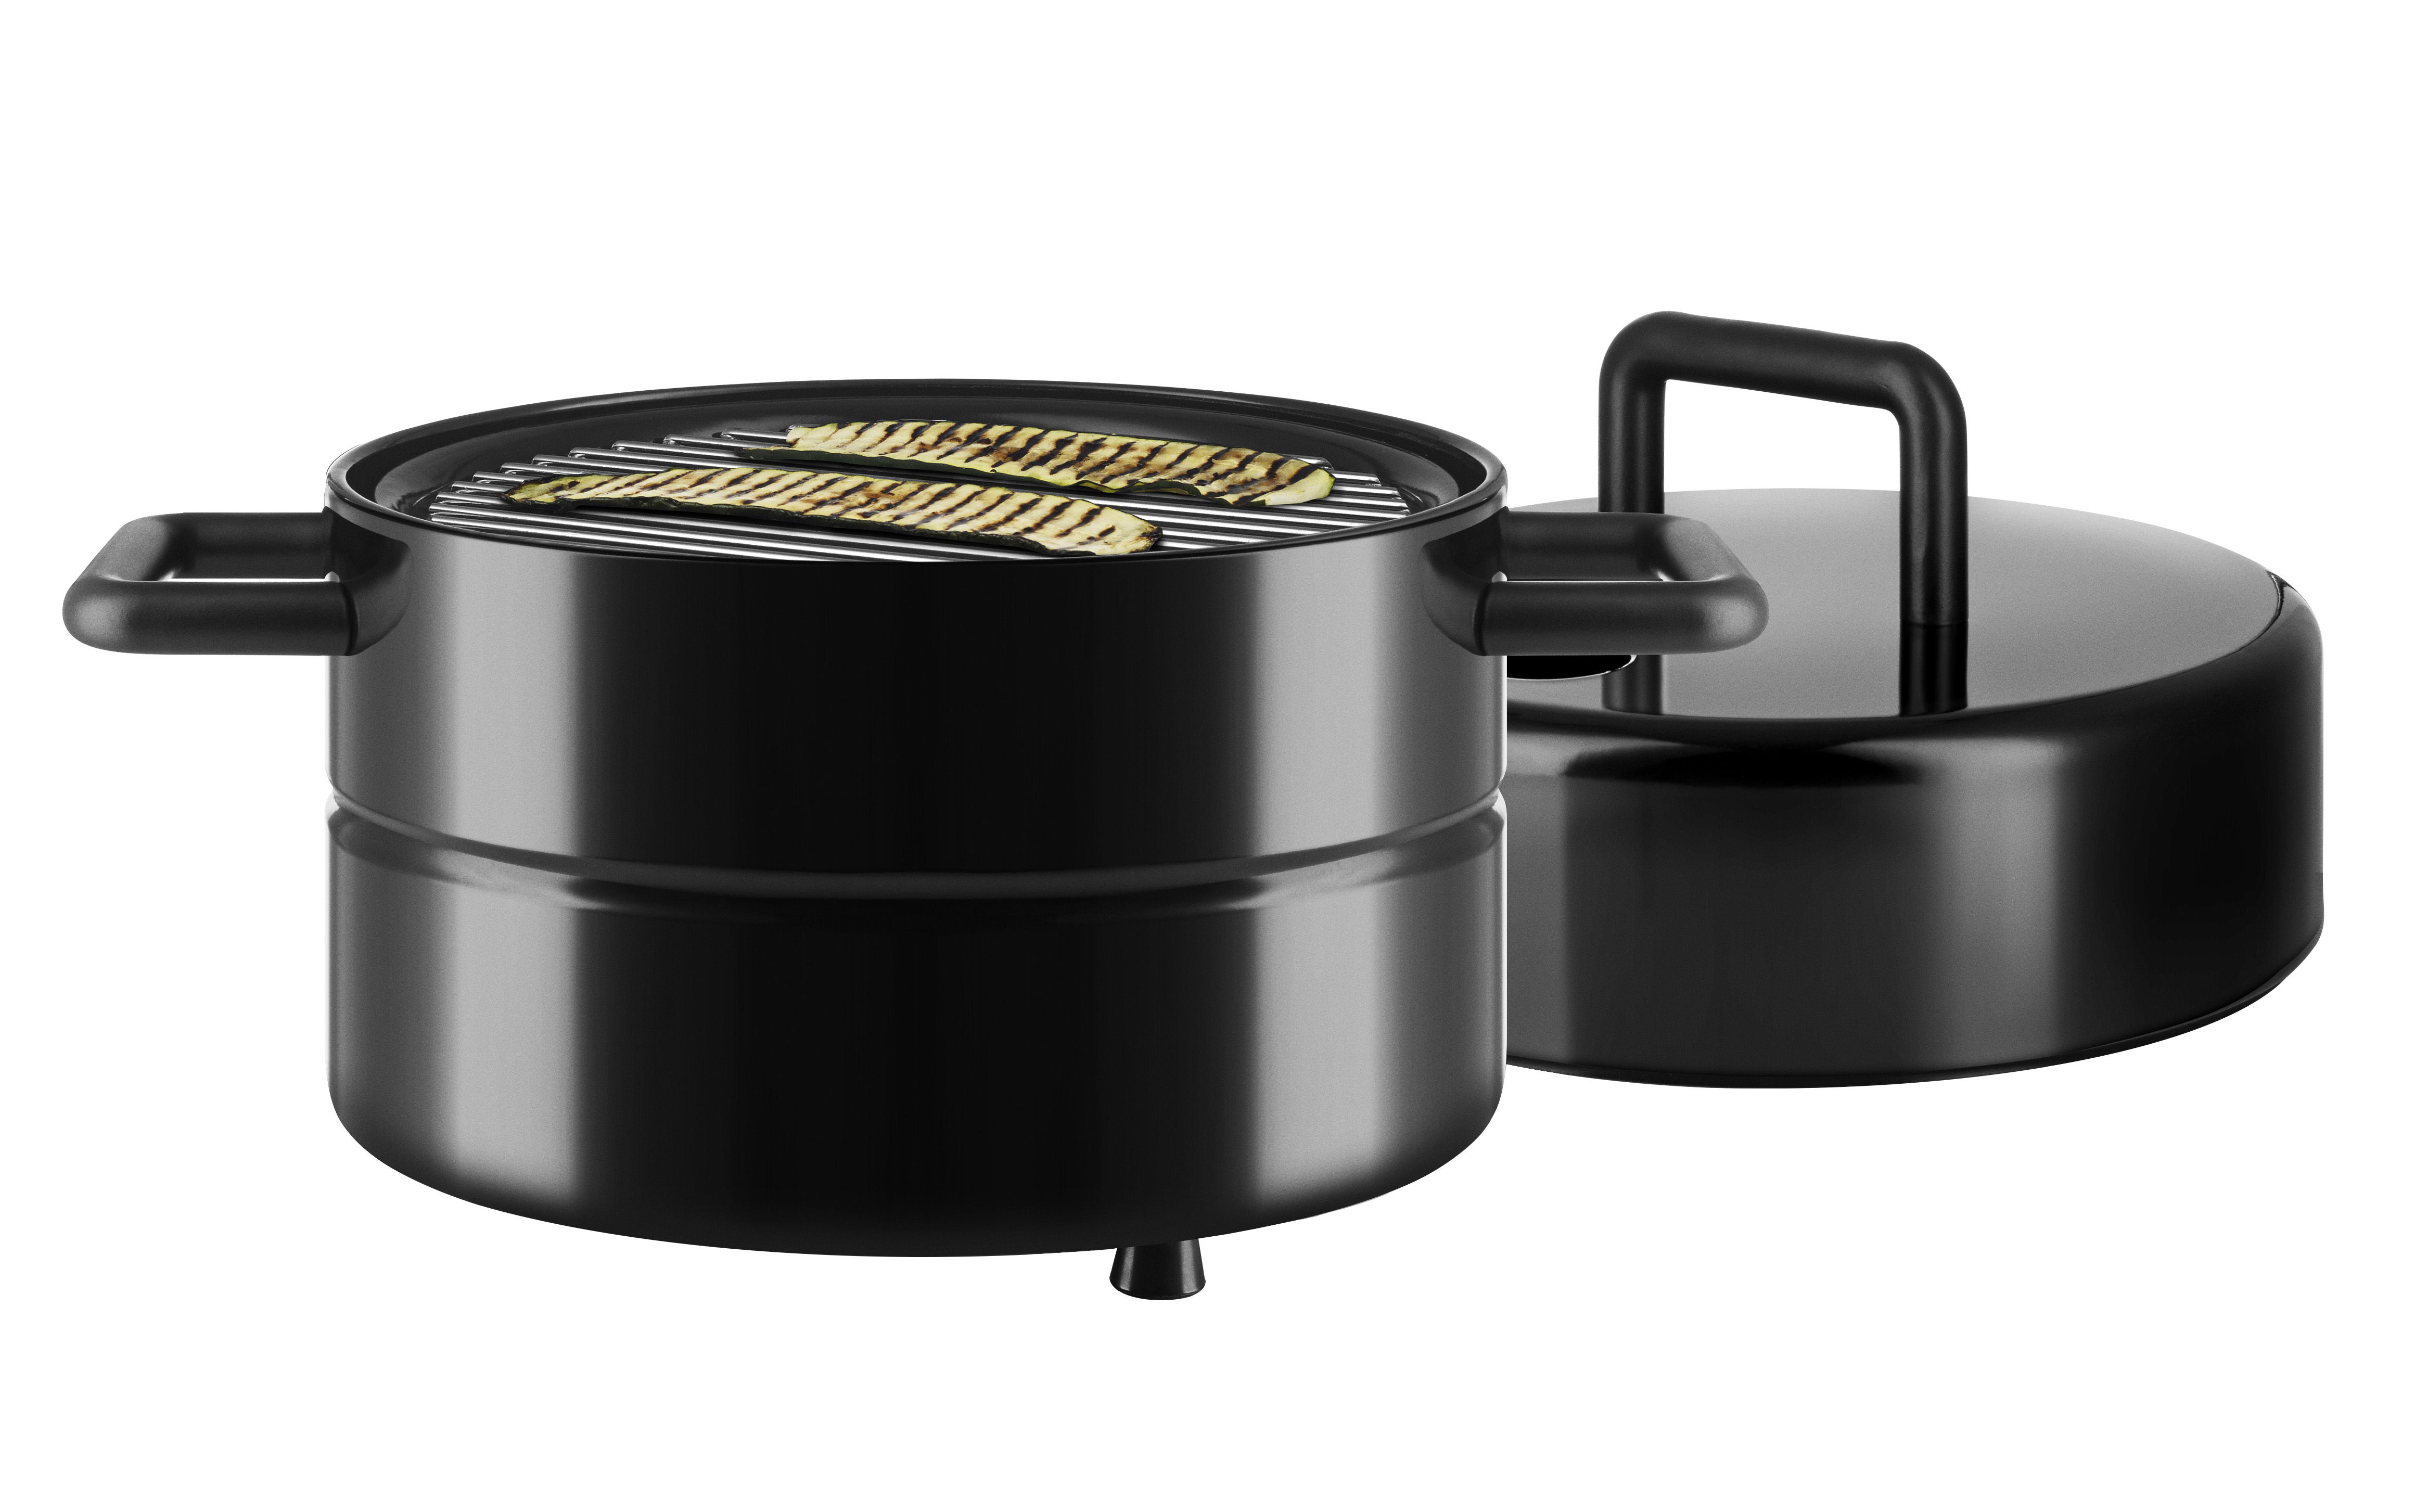 Outdoor - Barbecues & Charcoal Grills - To Go Movable charcoal barbecue by Eva Solo - Black - Silicone, Stainless steel